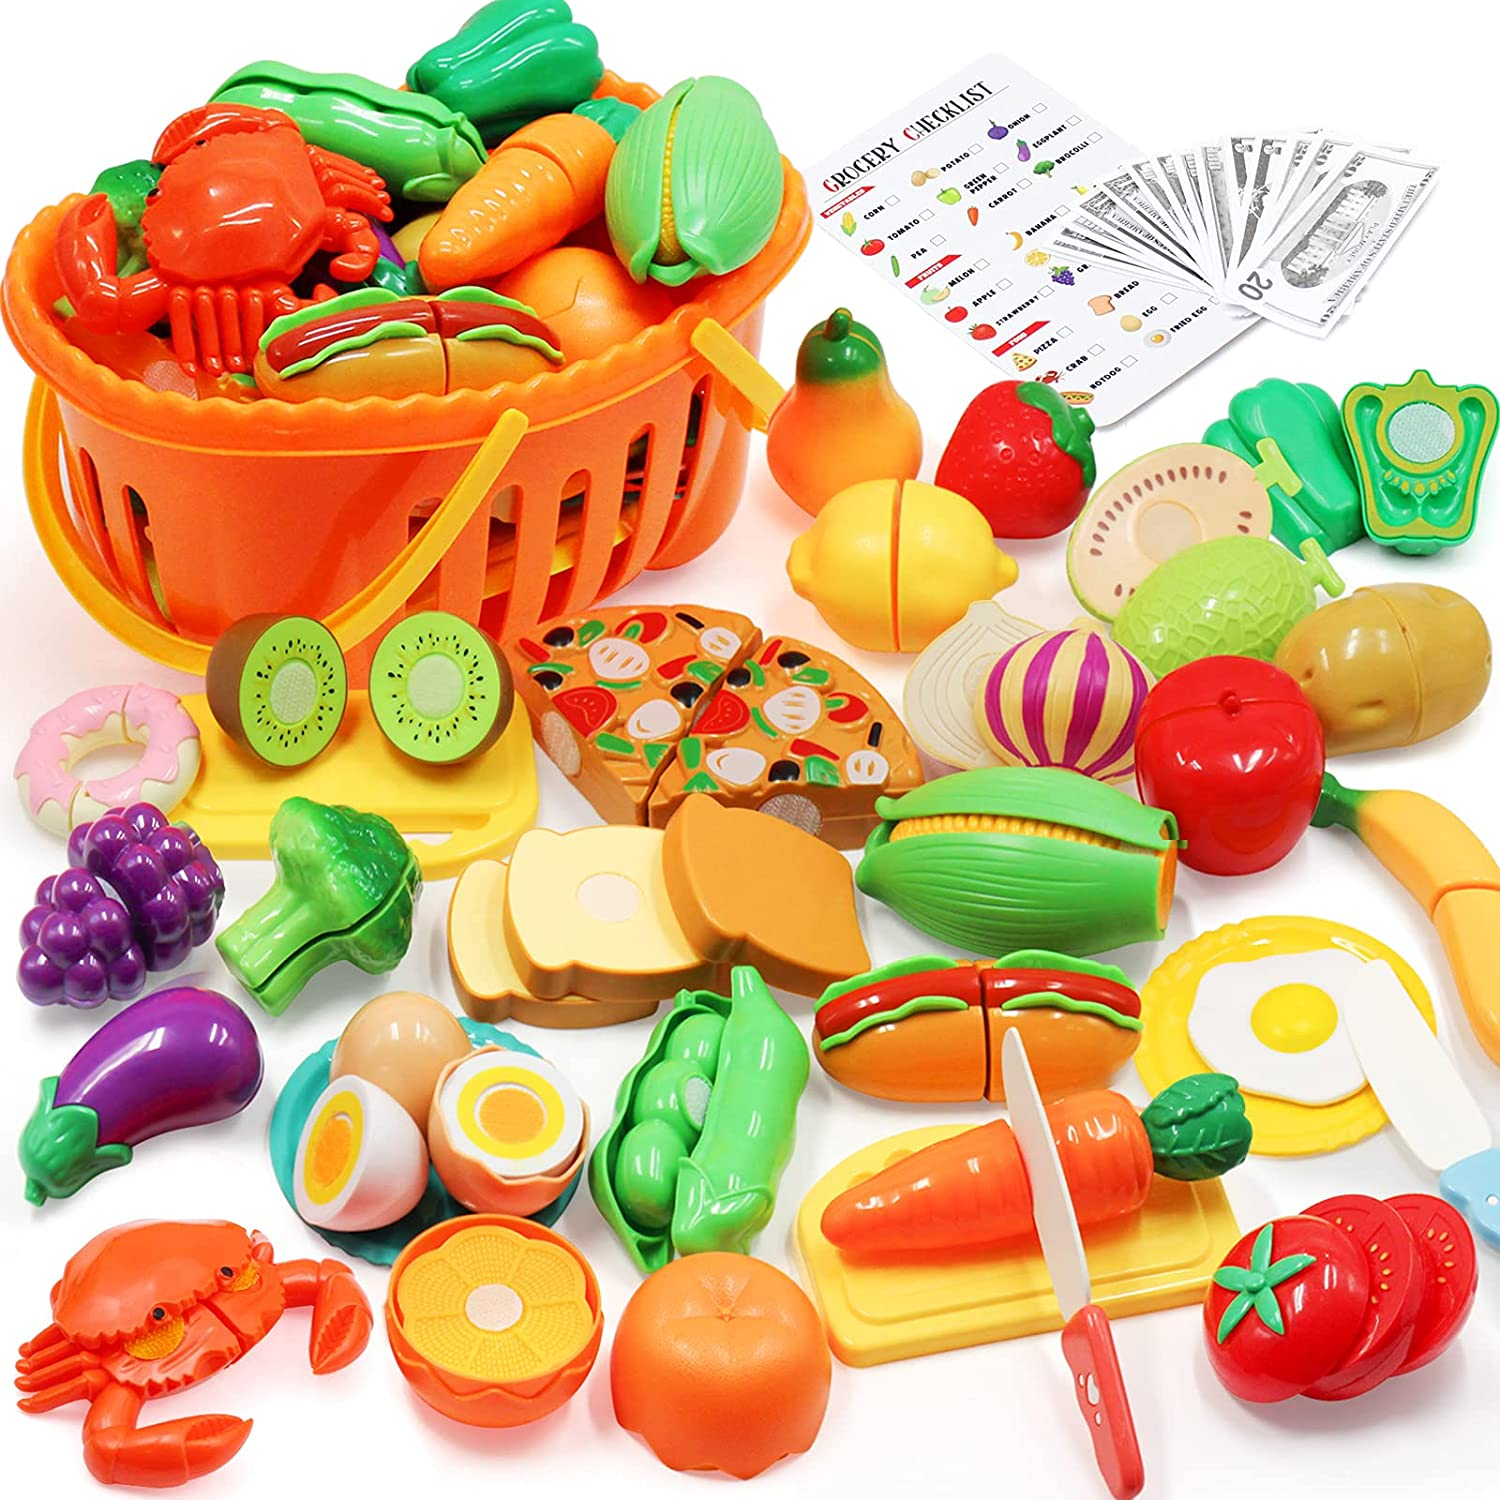 68PCS Cutting Pretend Play Food Sets for Kids Kitchen Toys Accessories with Storage Basket, Plastic Toy Food Set Fruits & Vegetables, Dishes, Knives, Shopping Card Playset for Kids Toddlers Girls Boys